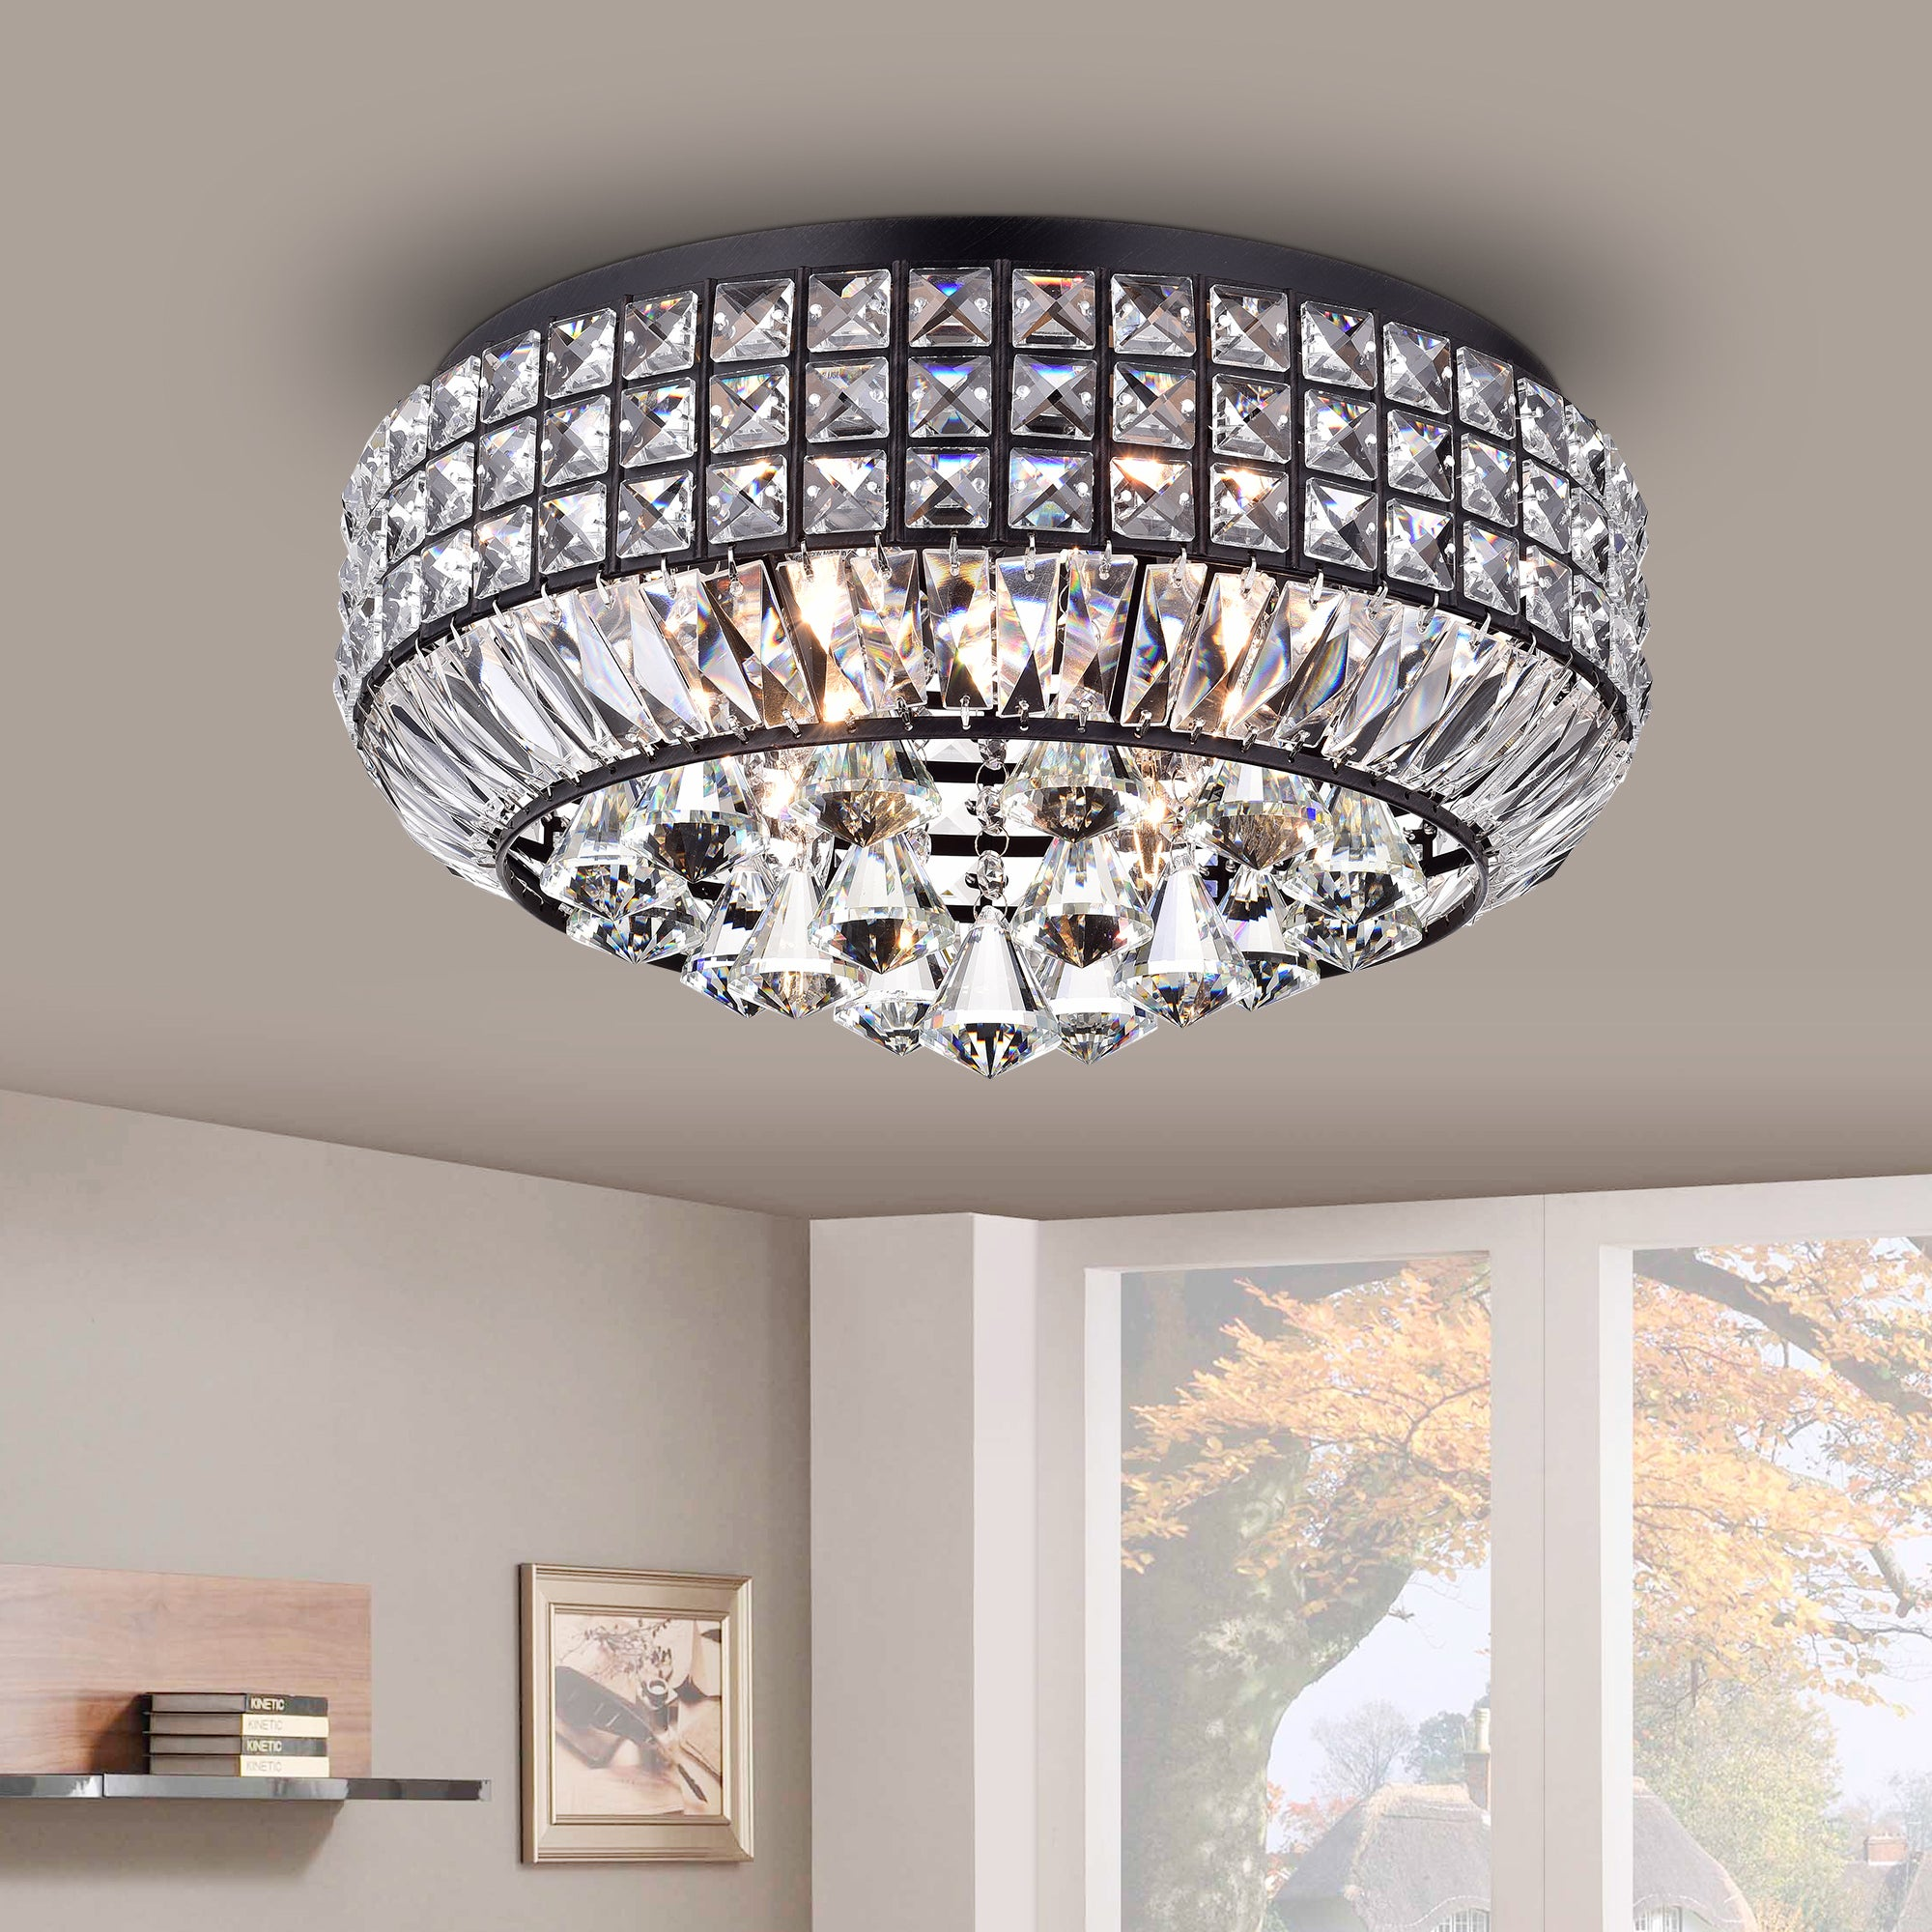 lights p press drag reneecrystalpendant crystal image zoom ceiling bhs hold pendant to renee pendants lighting the light and pan all